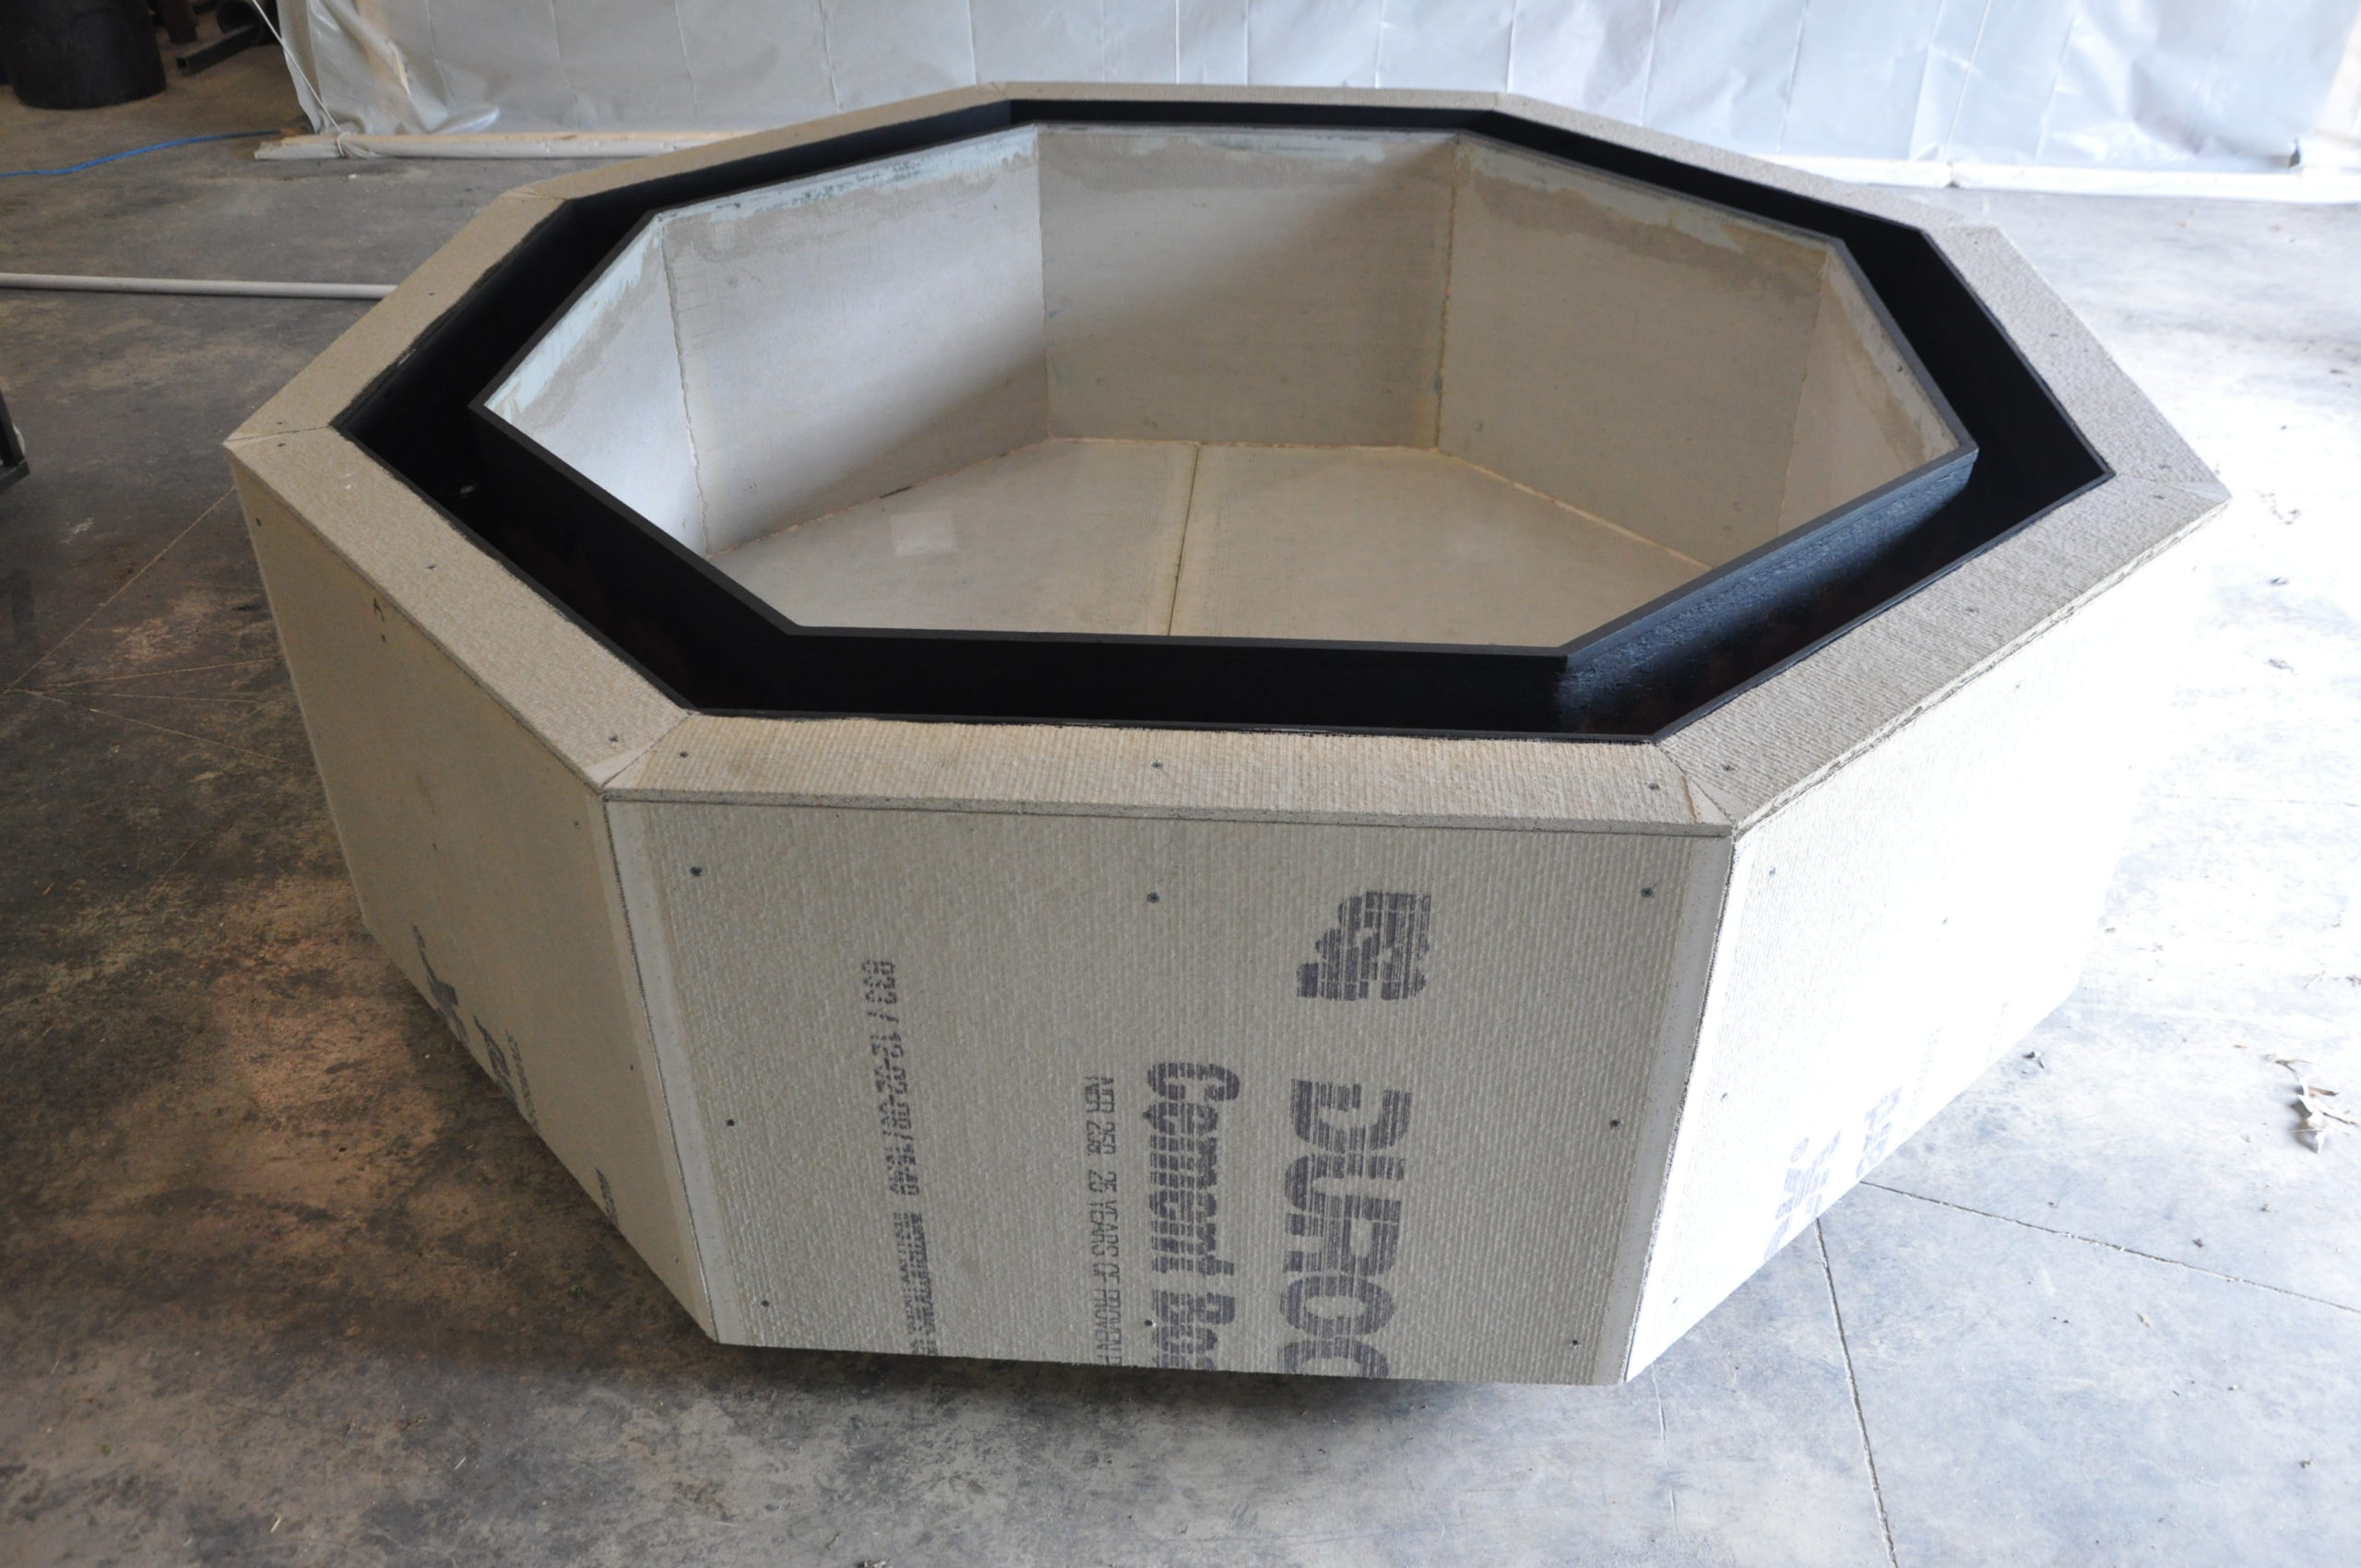 Negative Edge Baptismal Font Under Construction at Water Structures Manufacturing Facility